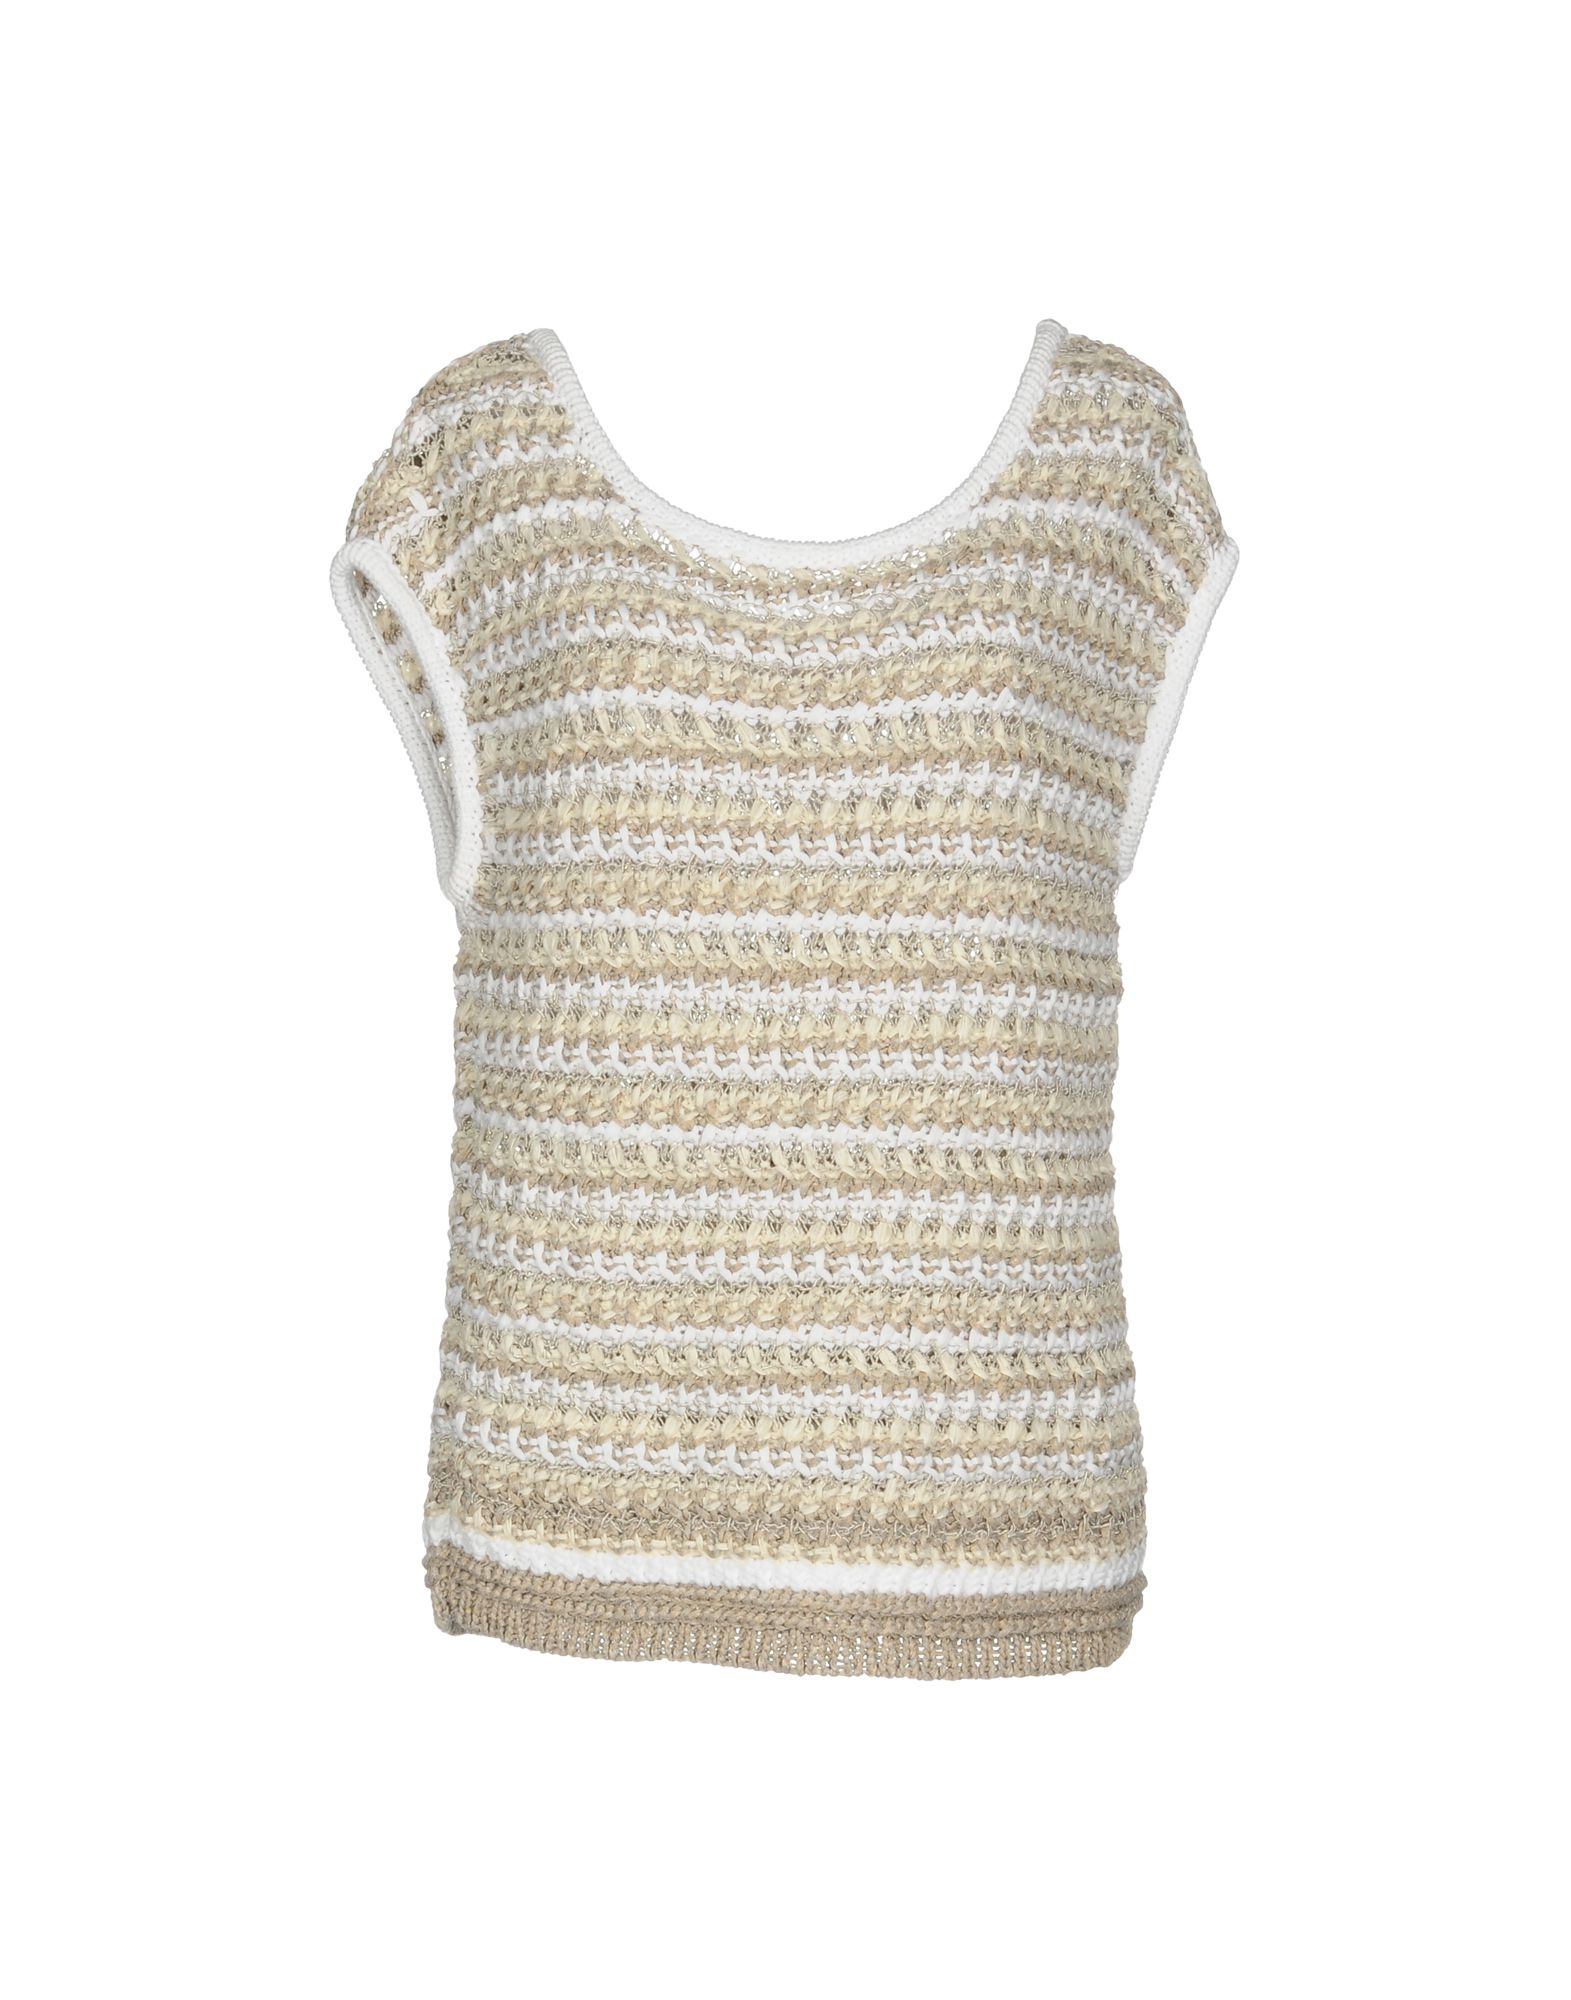 MAISON ULLENS Sweater in Ivory